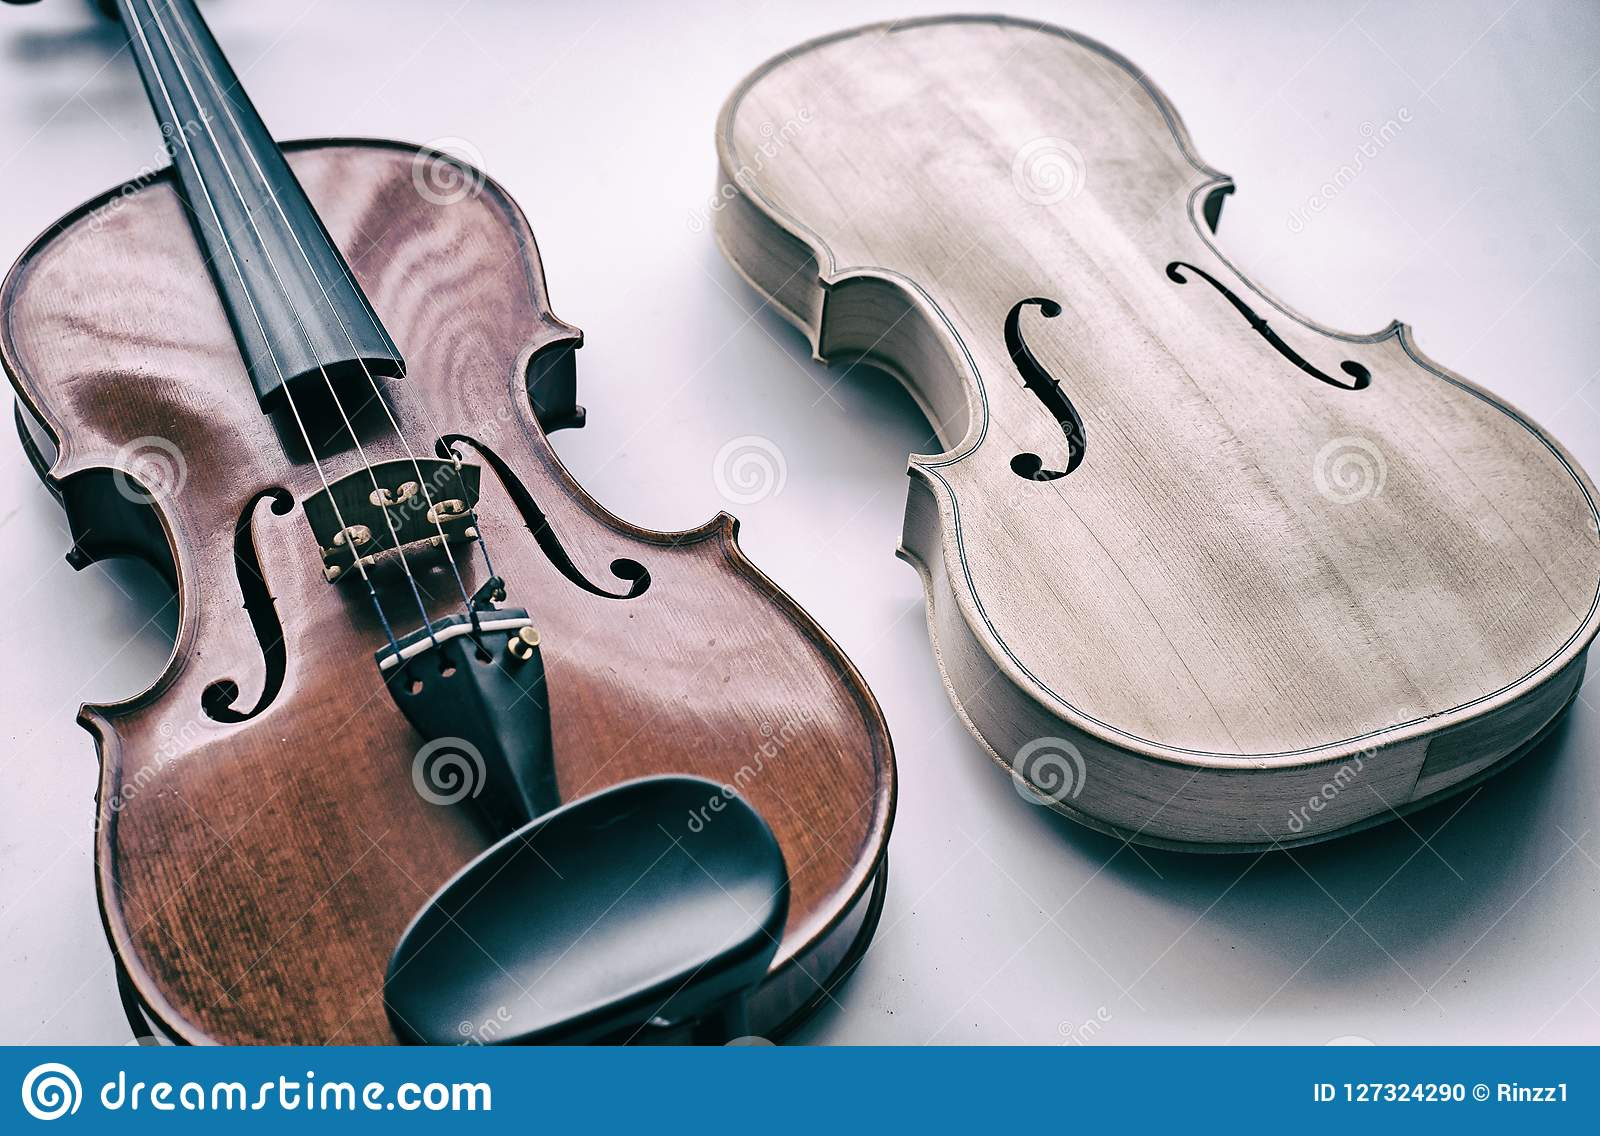 The abstract art design background of raw violin put beside completed violin